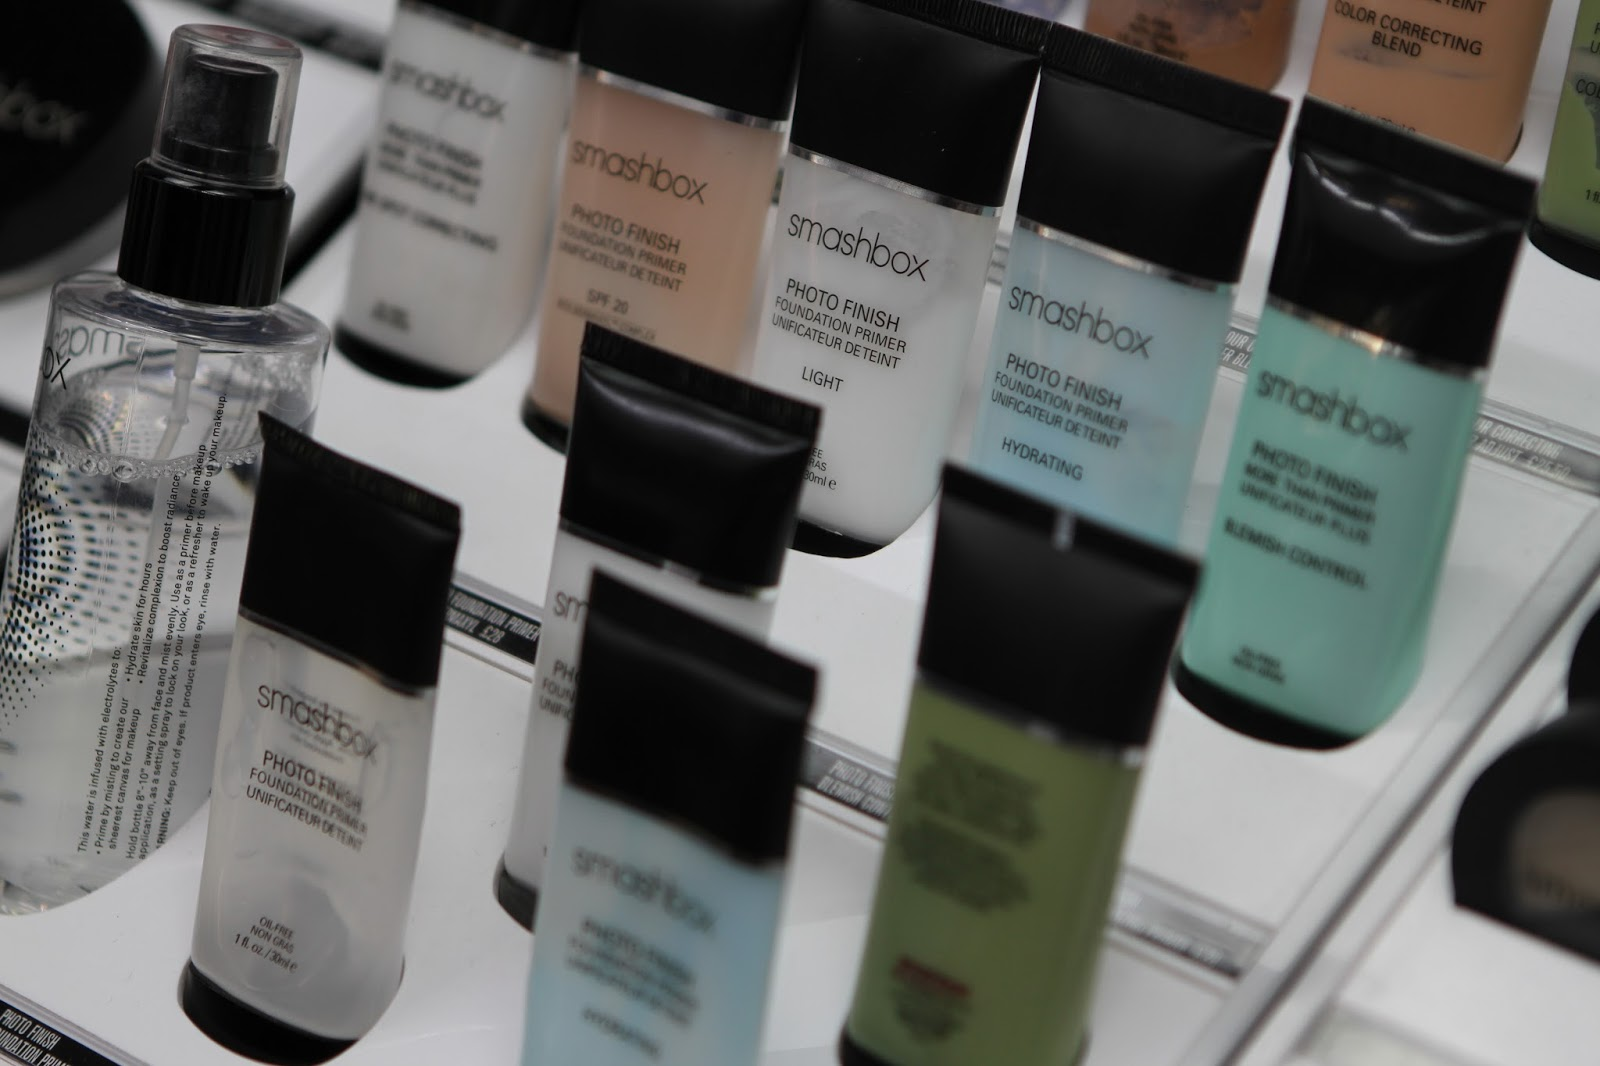 Smashbox primers